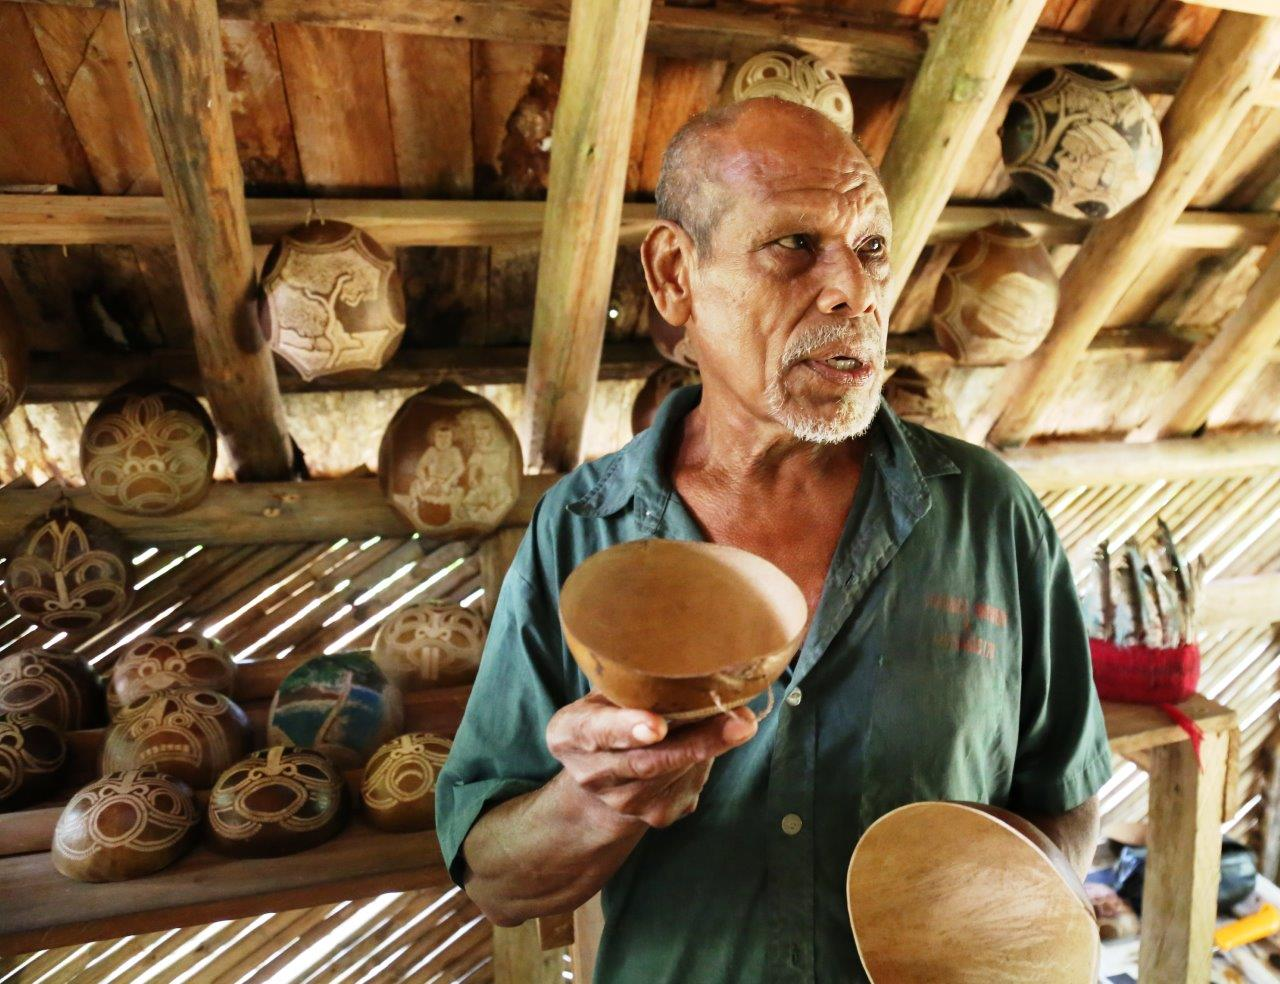 A past chief of the Kalinago tribe, now a craftsman of beautiful calabash sculptures